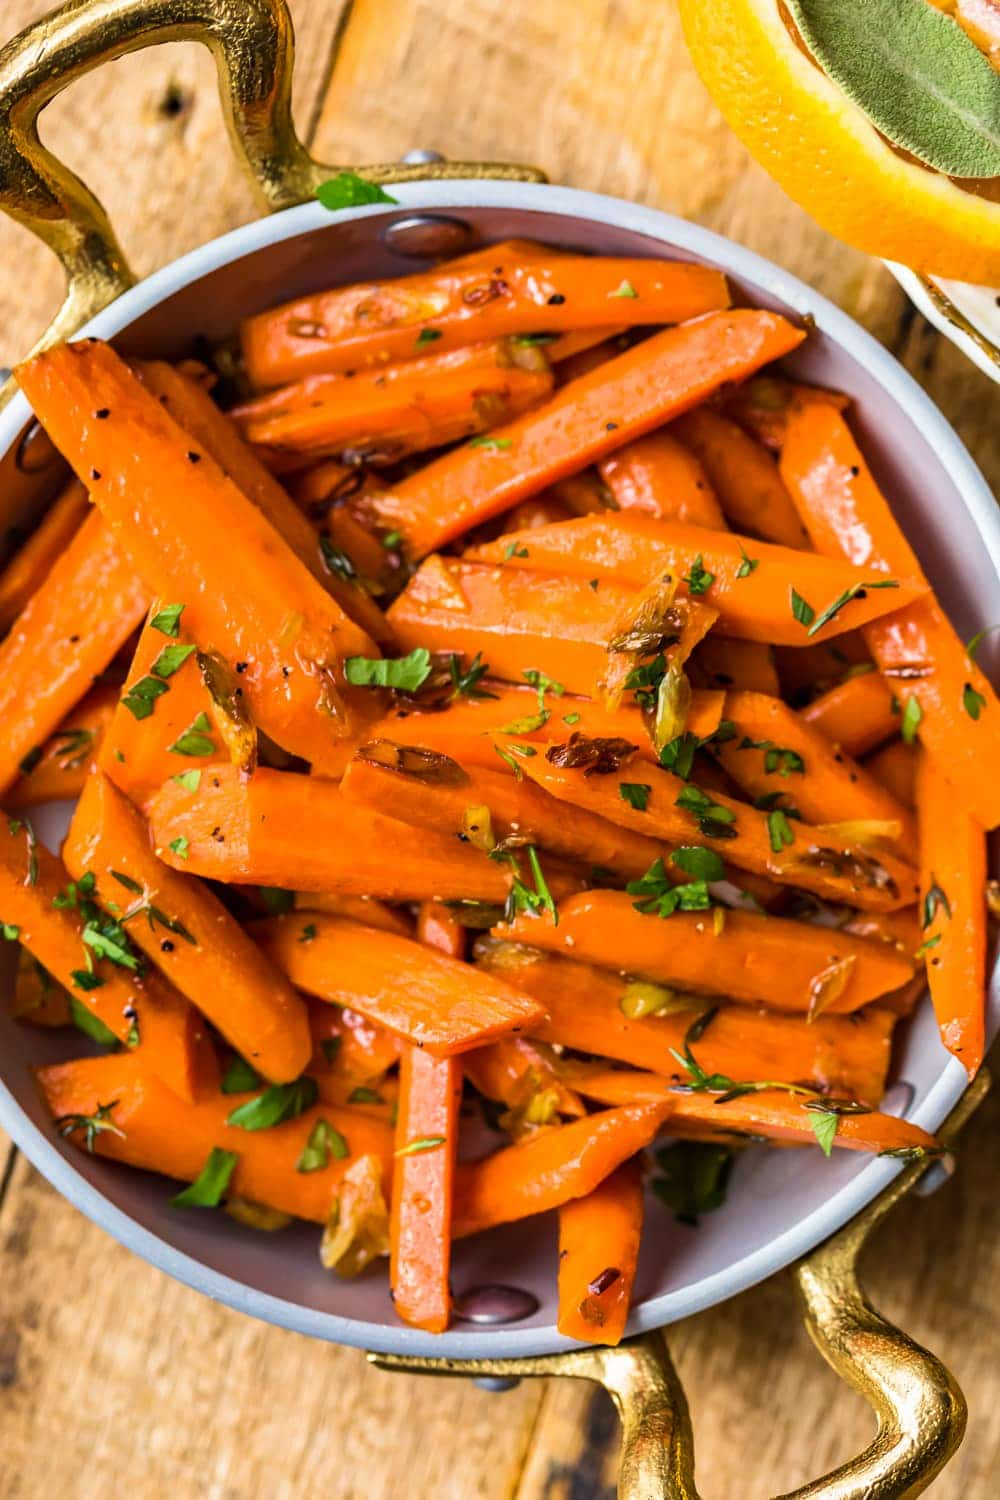 Sauteed Carrots in a serving bowl